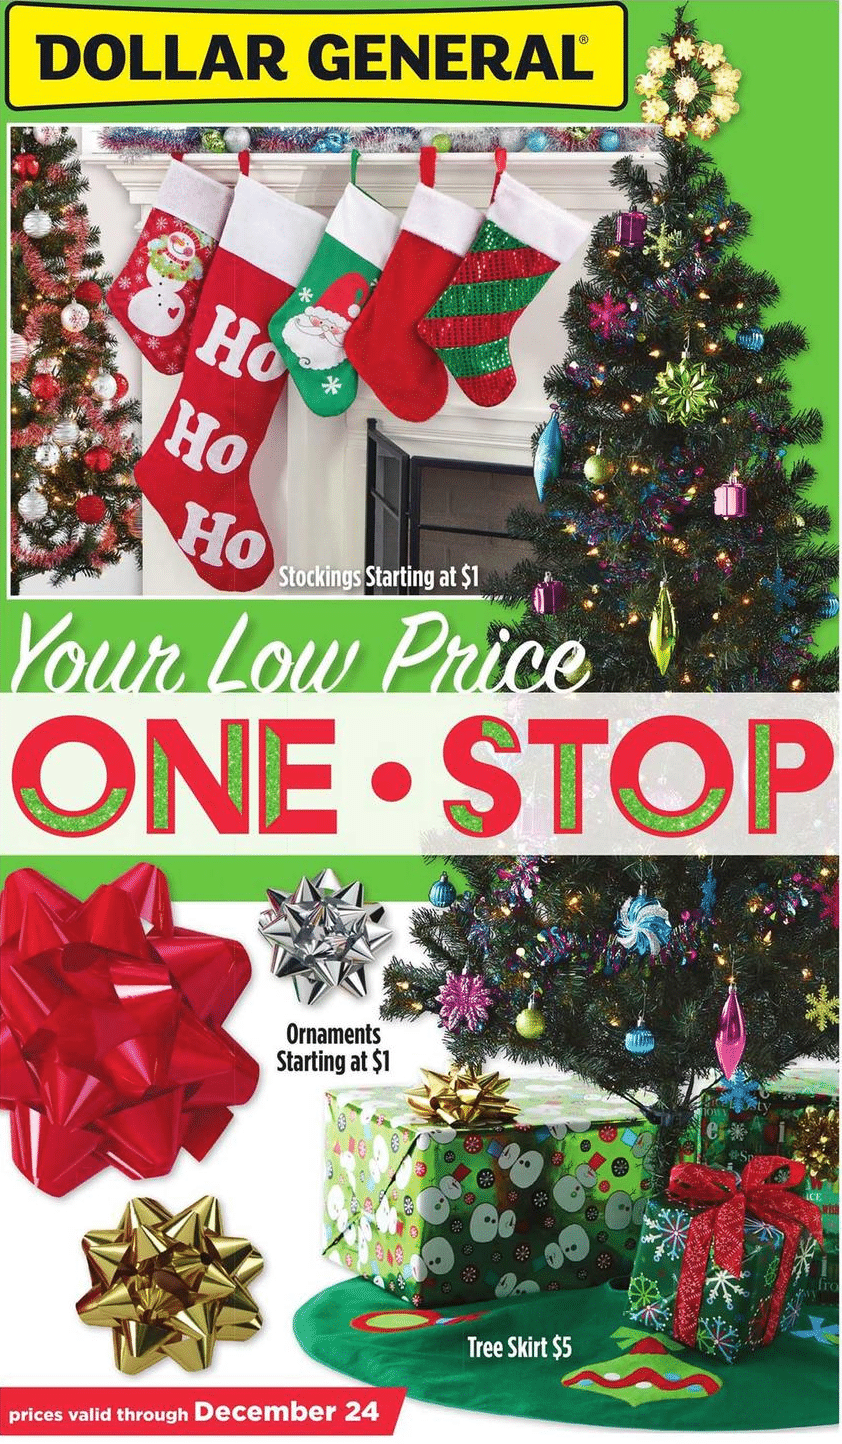 Dollar General Holiday Book 2016